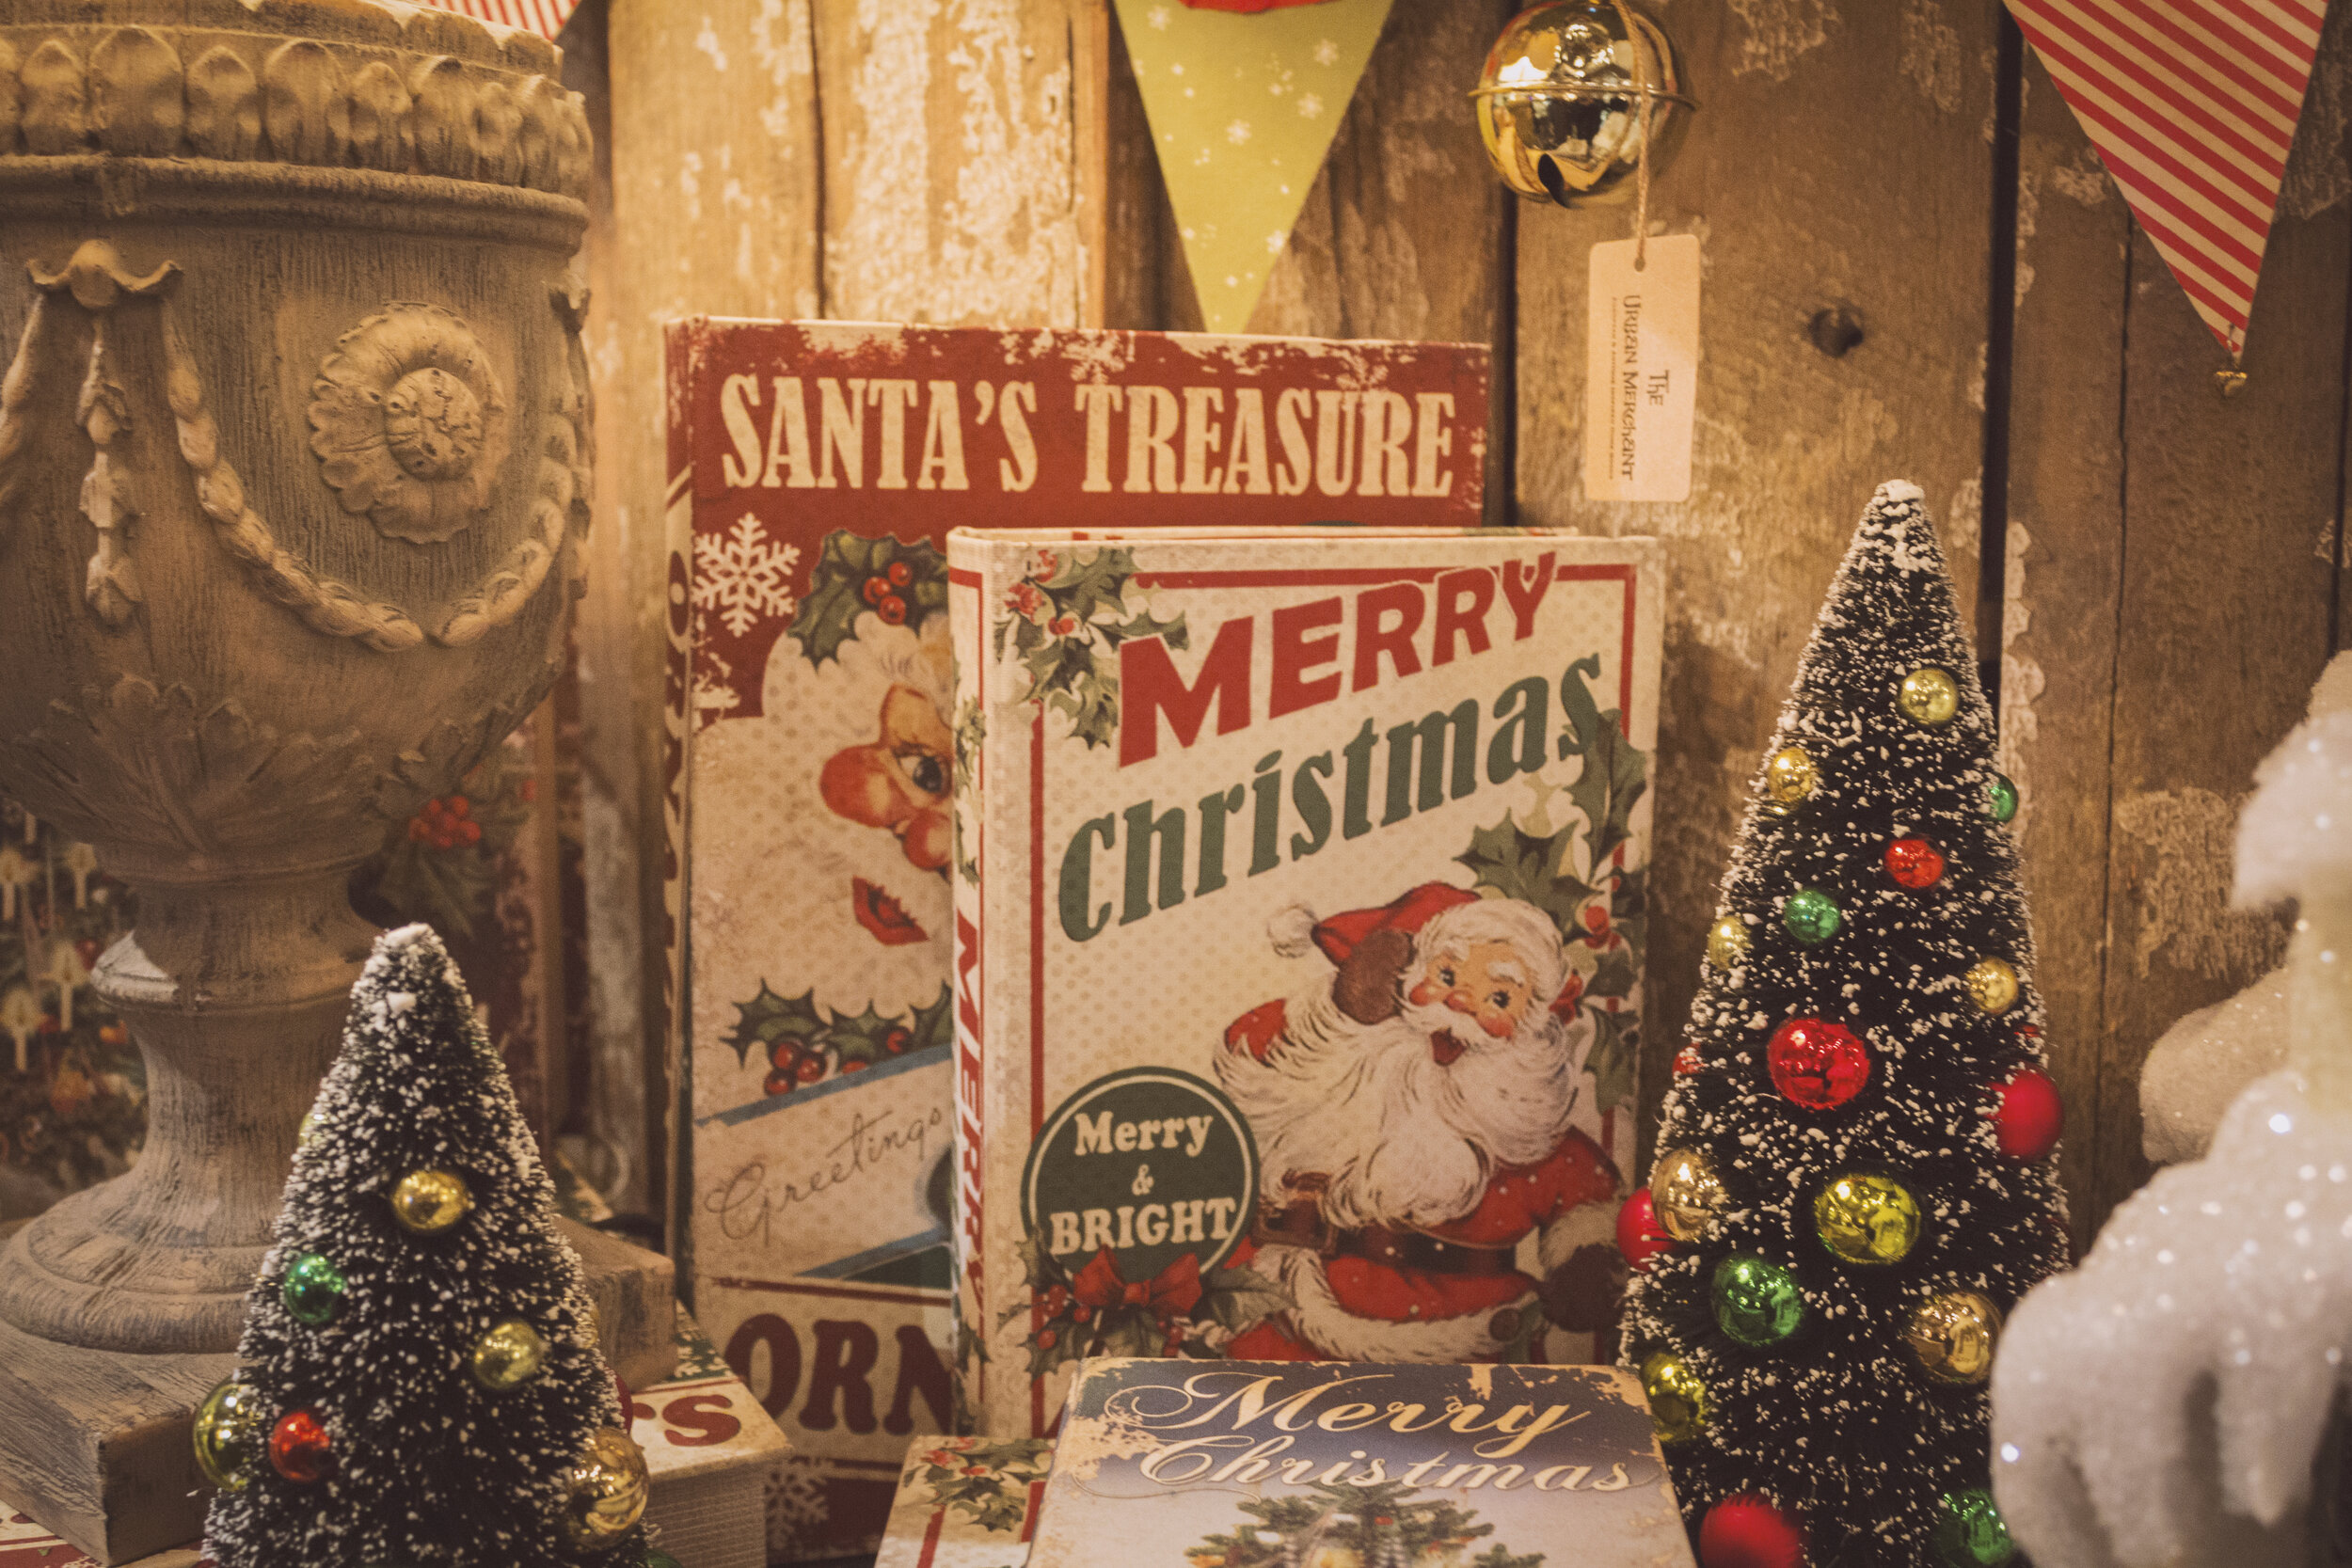 Santa's Workshop - There has been a mix up! Your name is on the naught list!  Sneak into Santa's Workshop, find the naught list and get your names off before the elves return and have a holly jolly Christmas!Number of Players - 8 PlayersDifficulty - 3/10